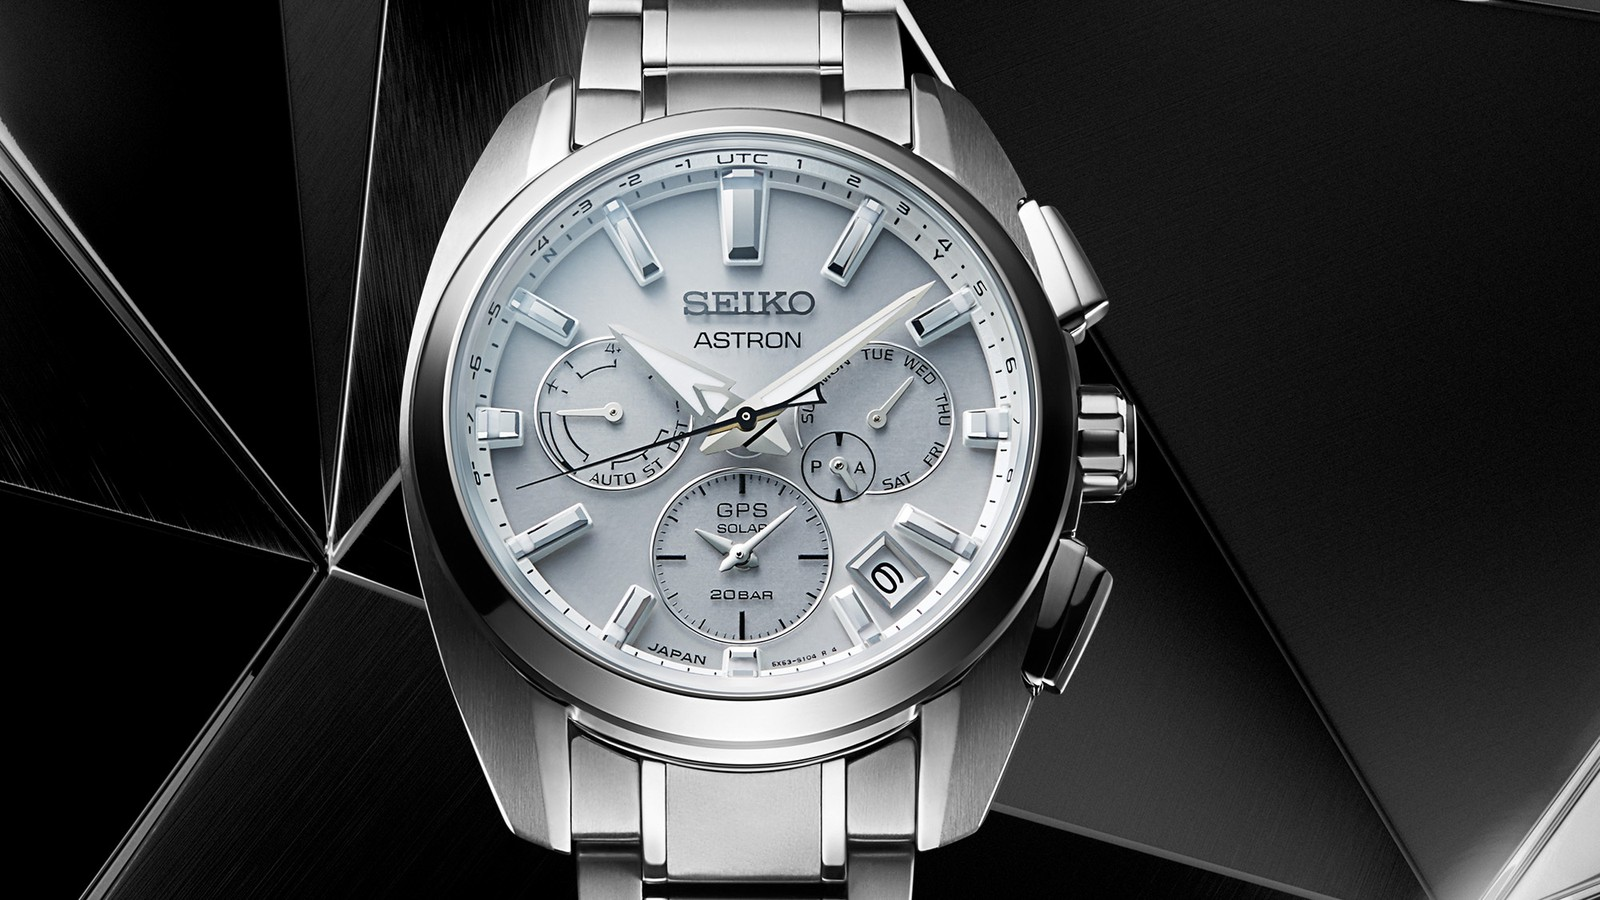 Seiko watches by ohmyclock.com